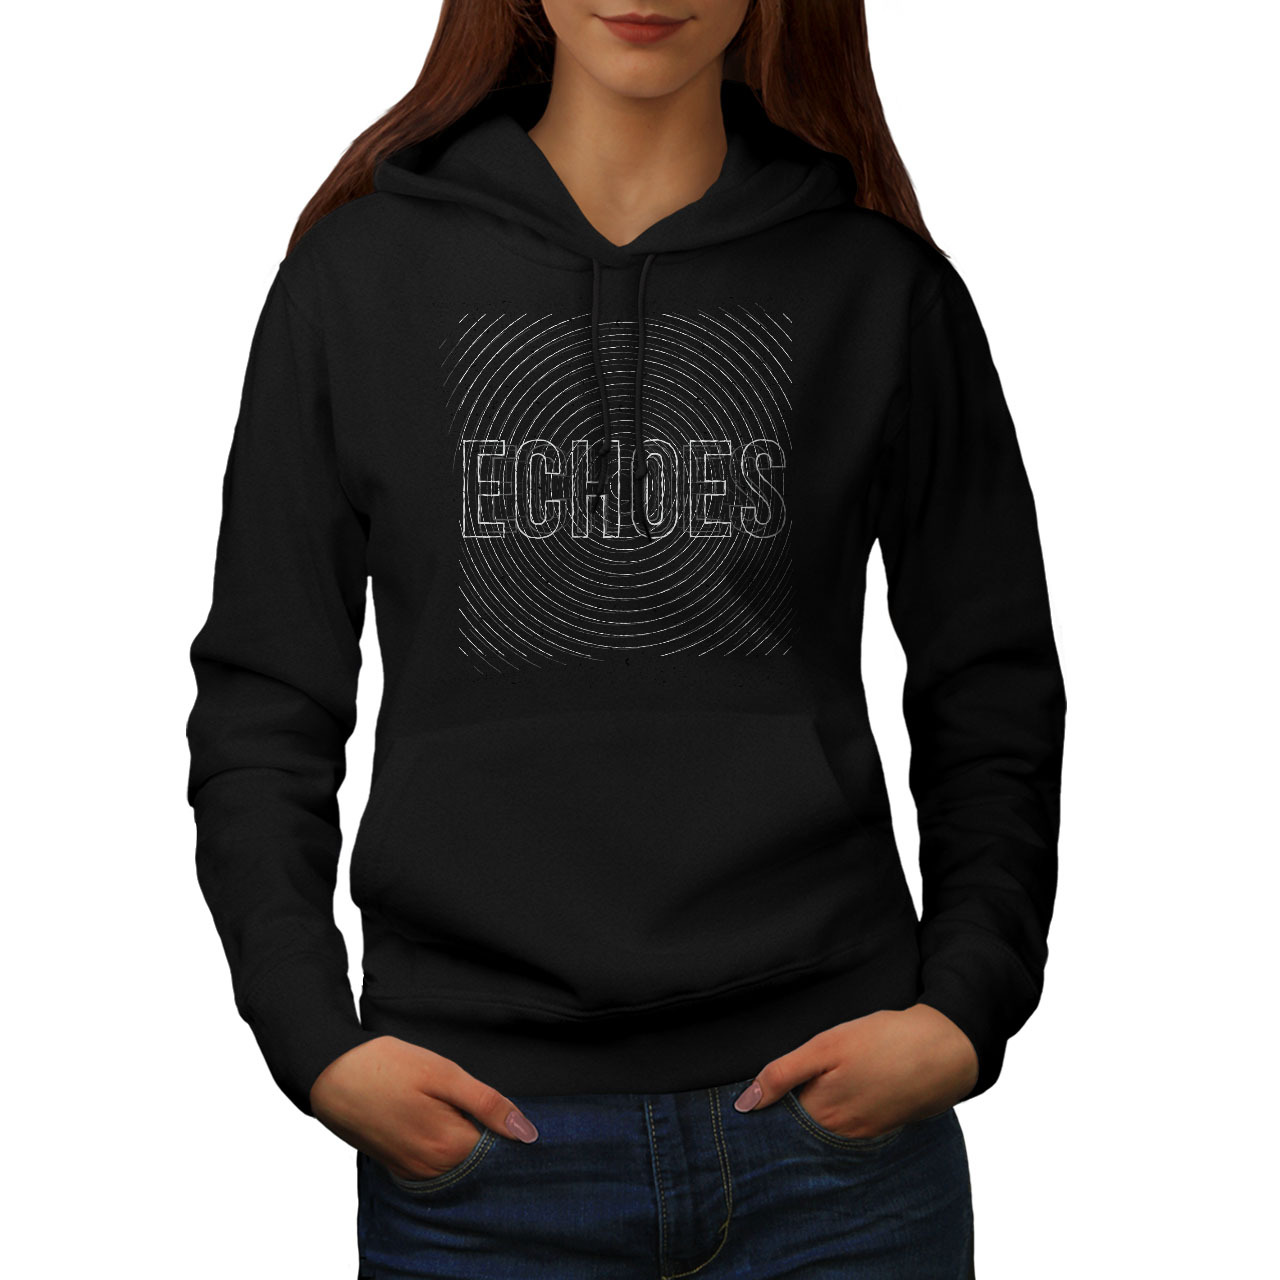 Primary image for Echoes Saying Text Slogan Sweatshirt Hoody Crazy Tour Women Hoodie